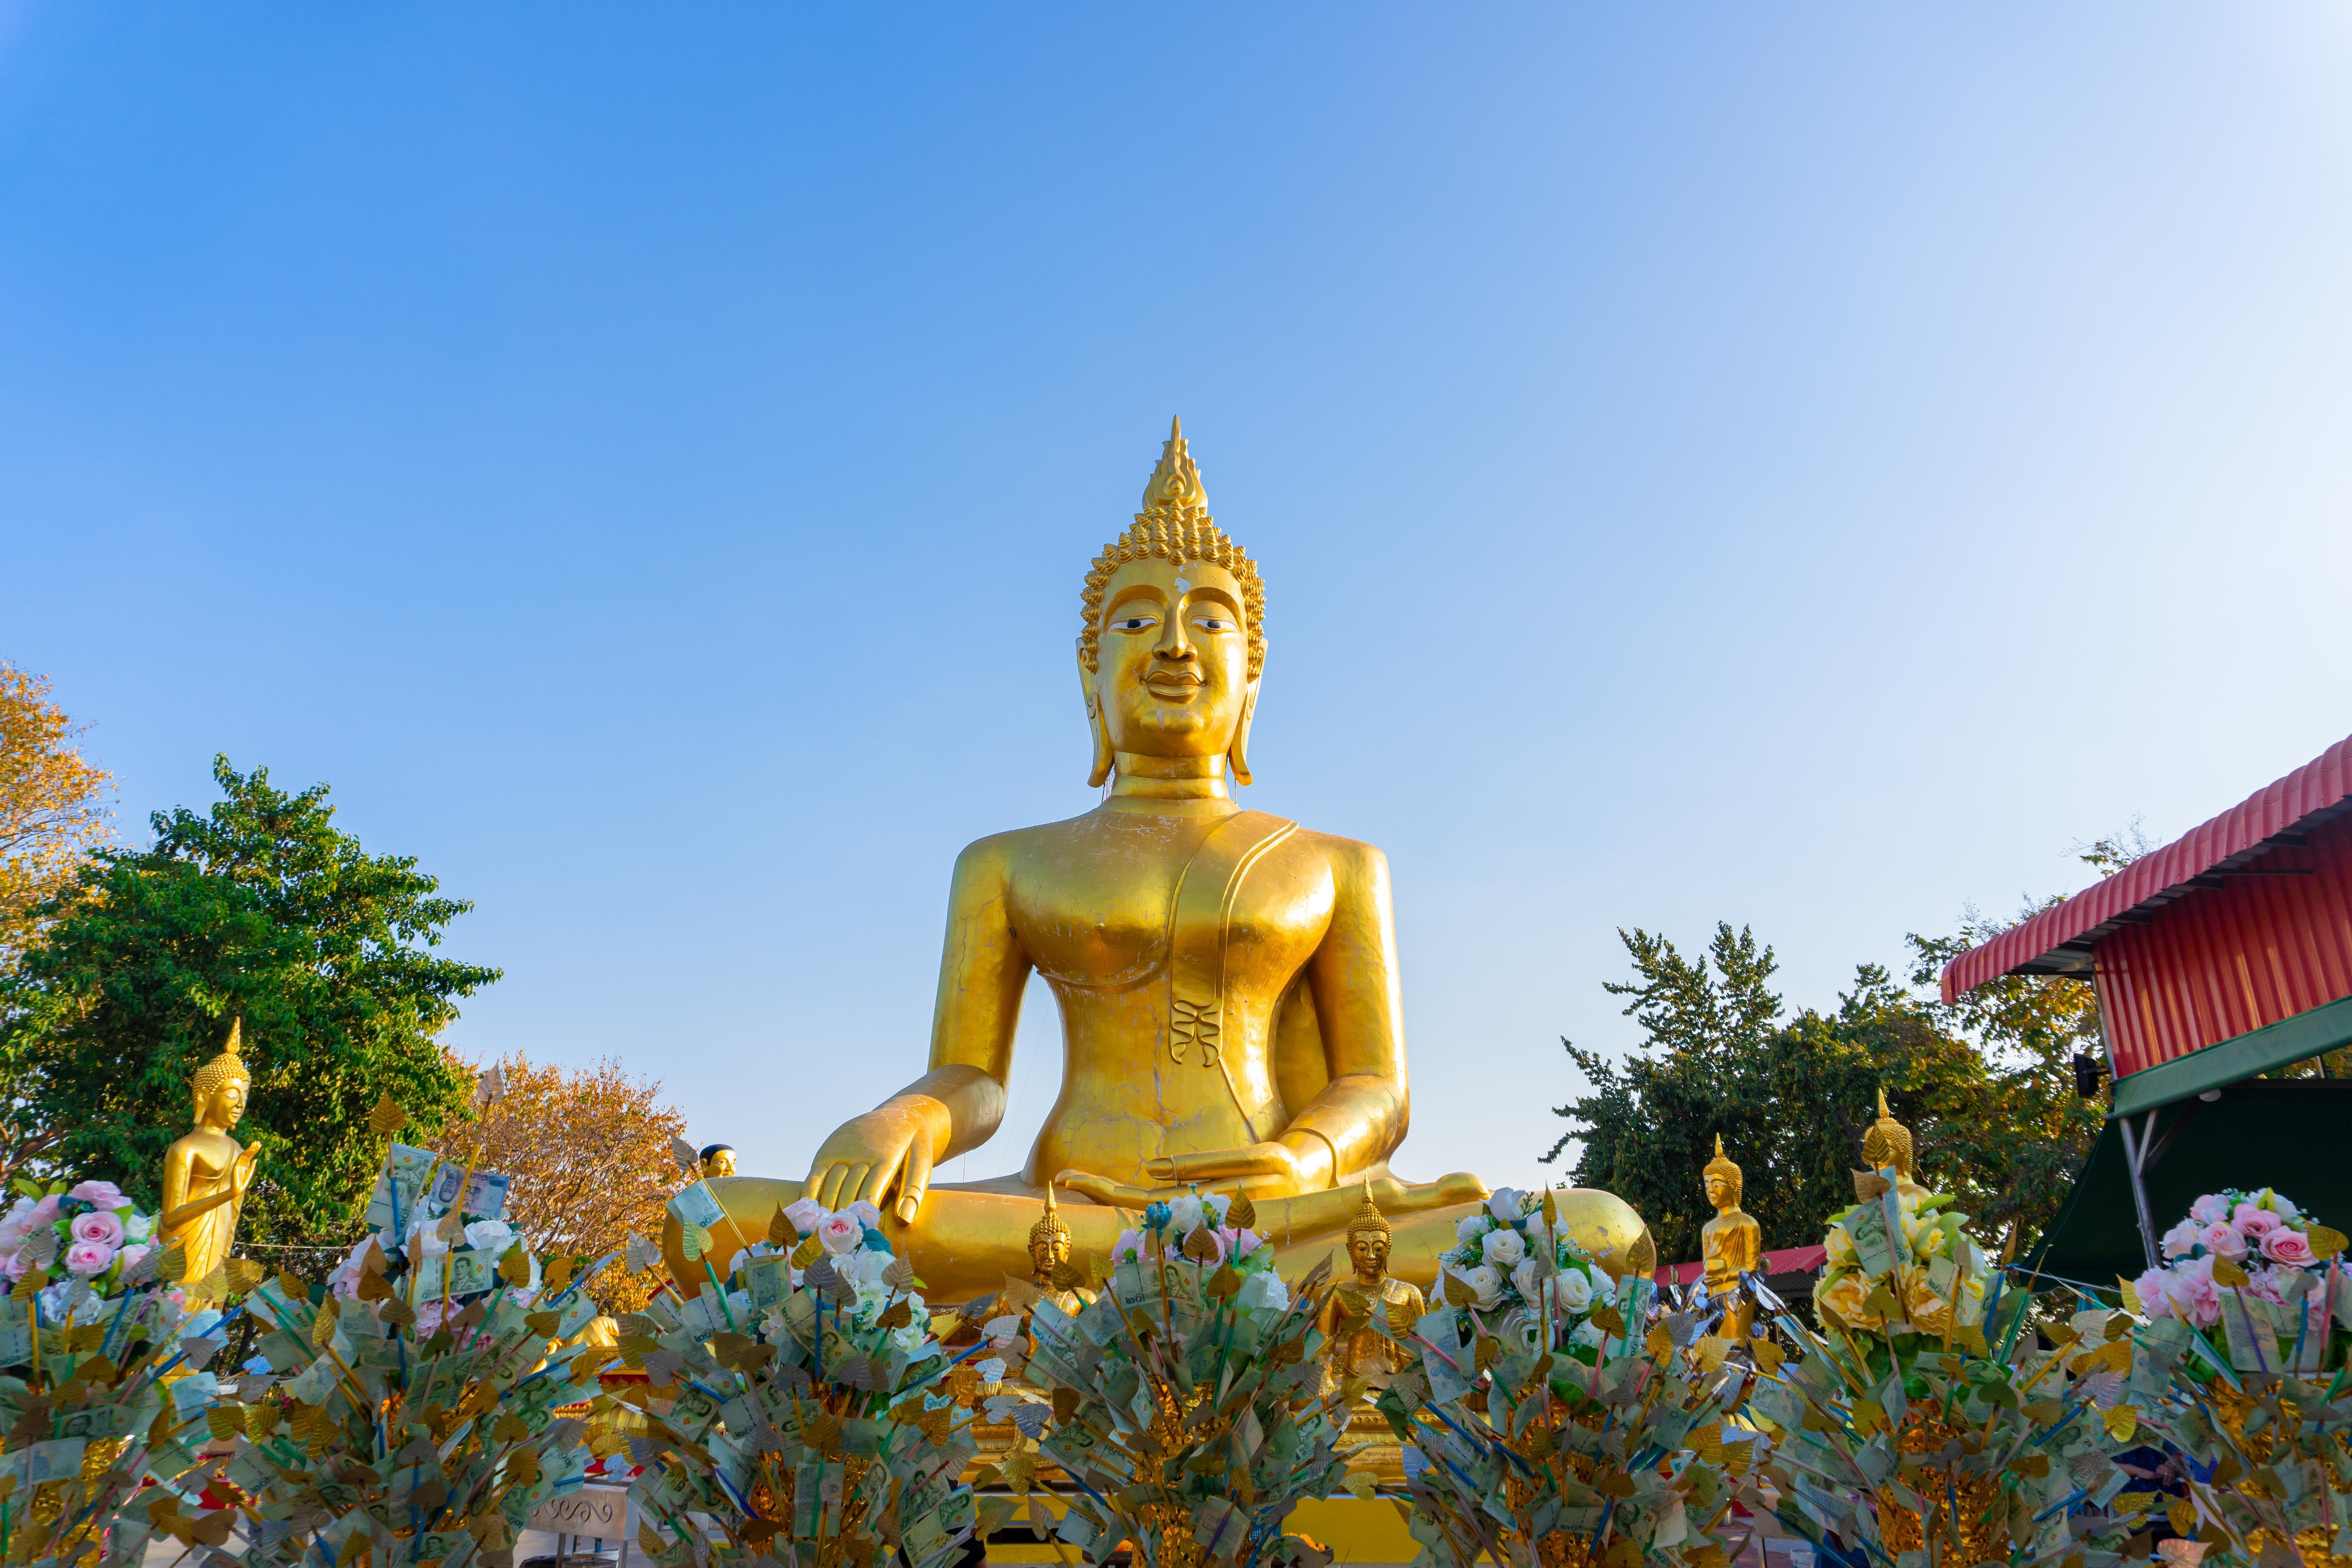 How to Spend 2 Days in Pattaya